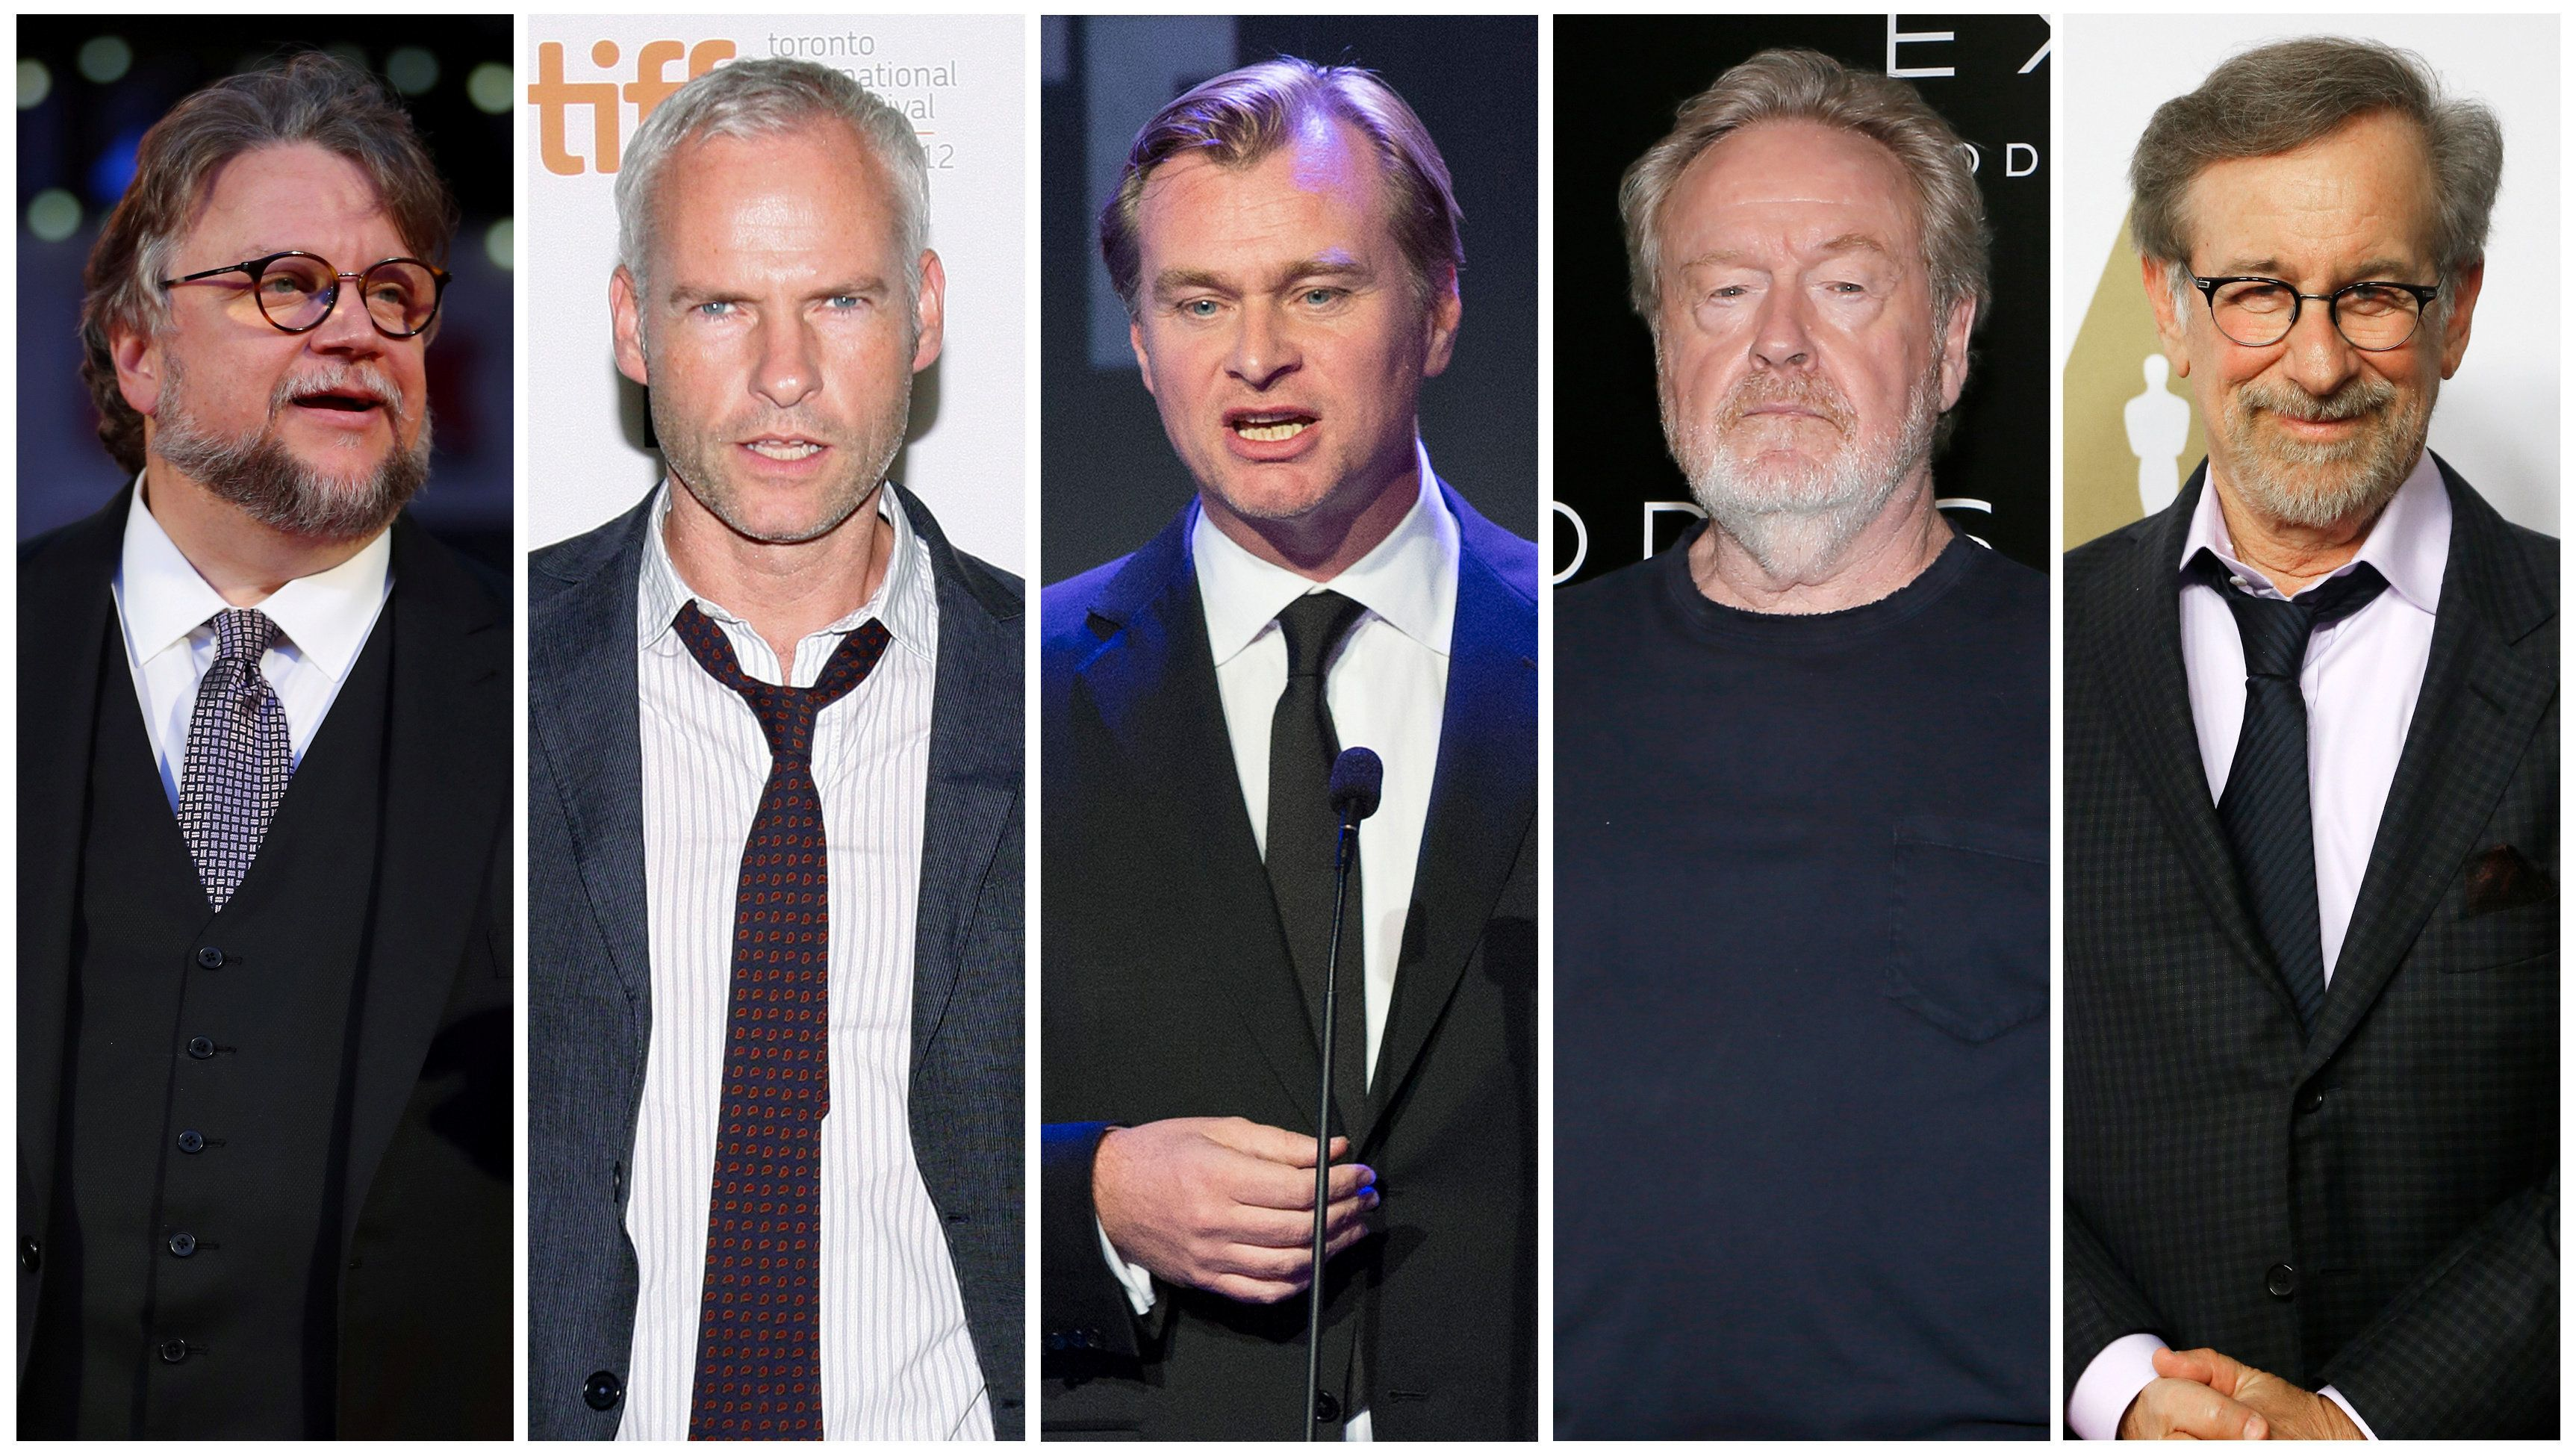 Nominees for the 75th Golden Globe Awards, Best Director, Motion Picture category, (L-R) Guillermo del Toro, Martin McDonagh, Christopher Nolan, Ridley Scott and Steven Spielberg are seen in a combination of file photos.  REUTERS/File Photos